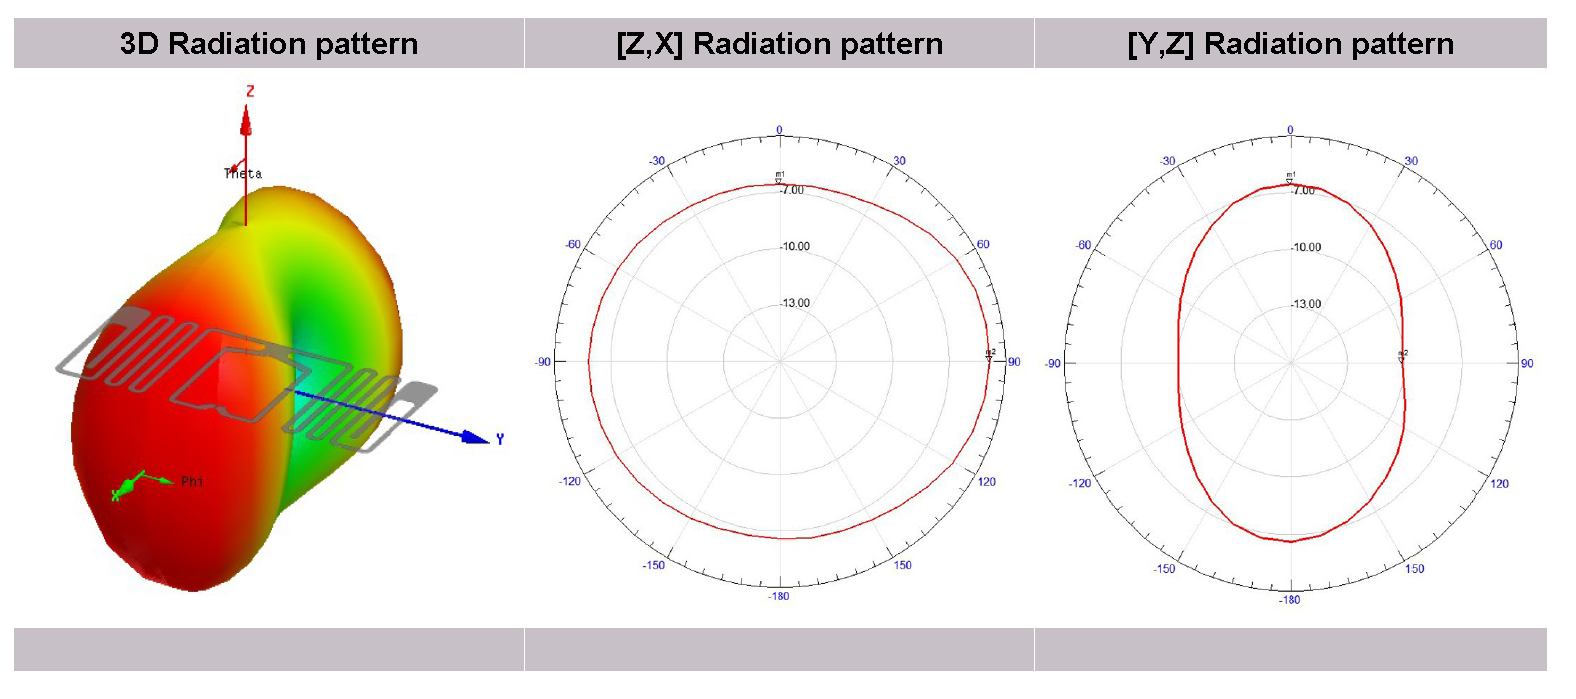 A typical radiation pattern from an RFID inlay. Image from http://www.lab-id.com/datasheet/inlay_UHF/SKLI4218.pdf.